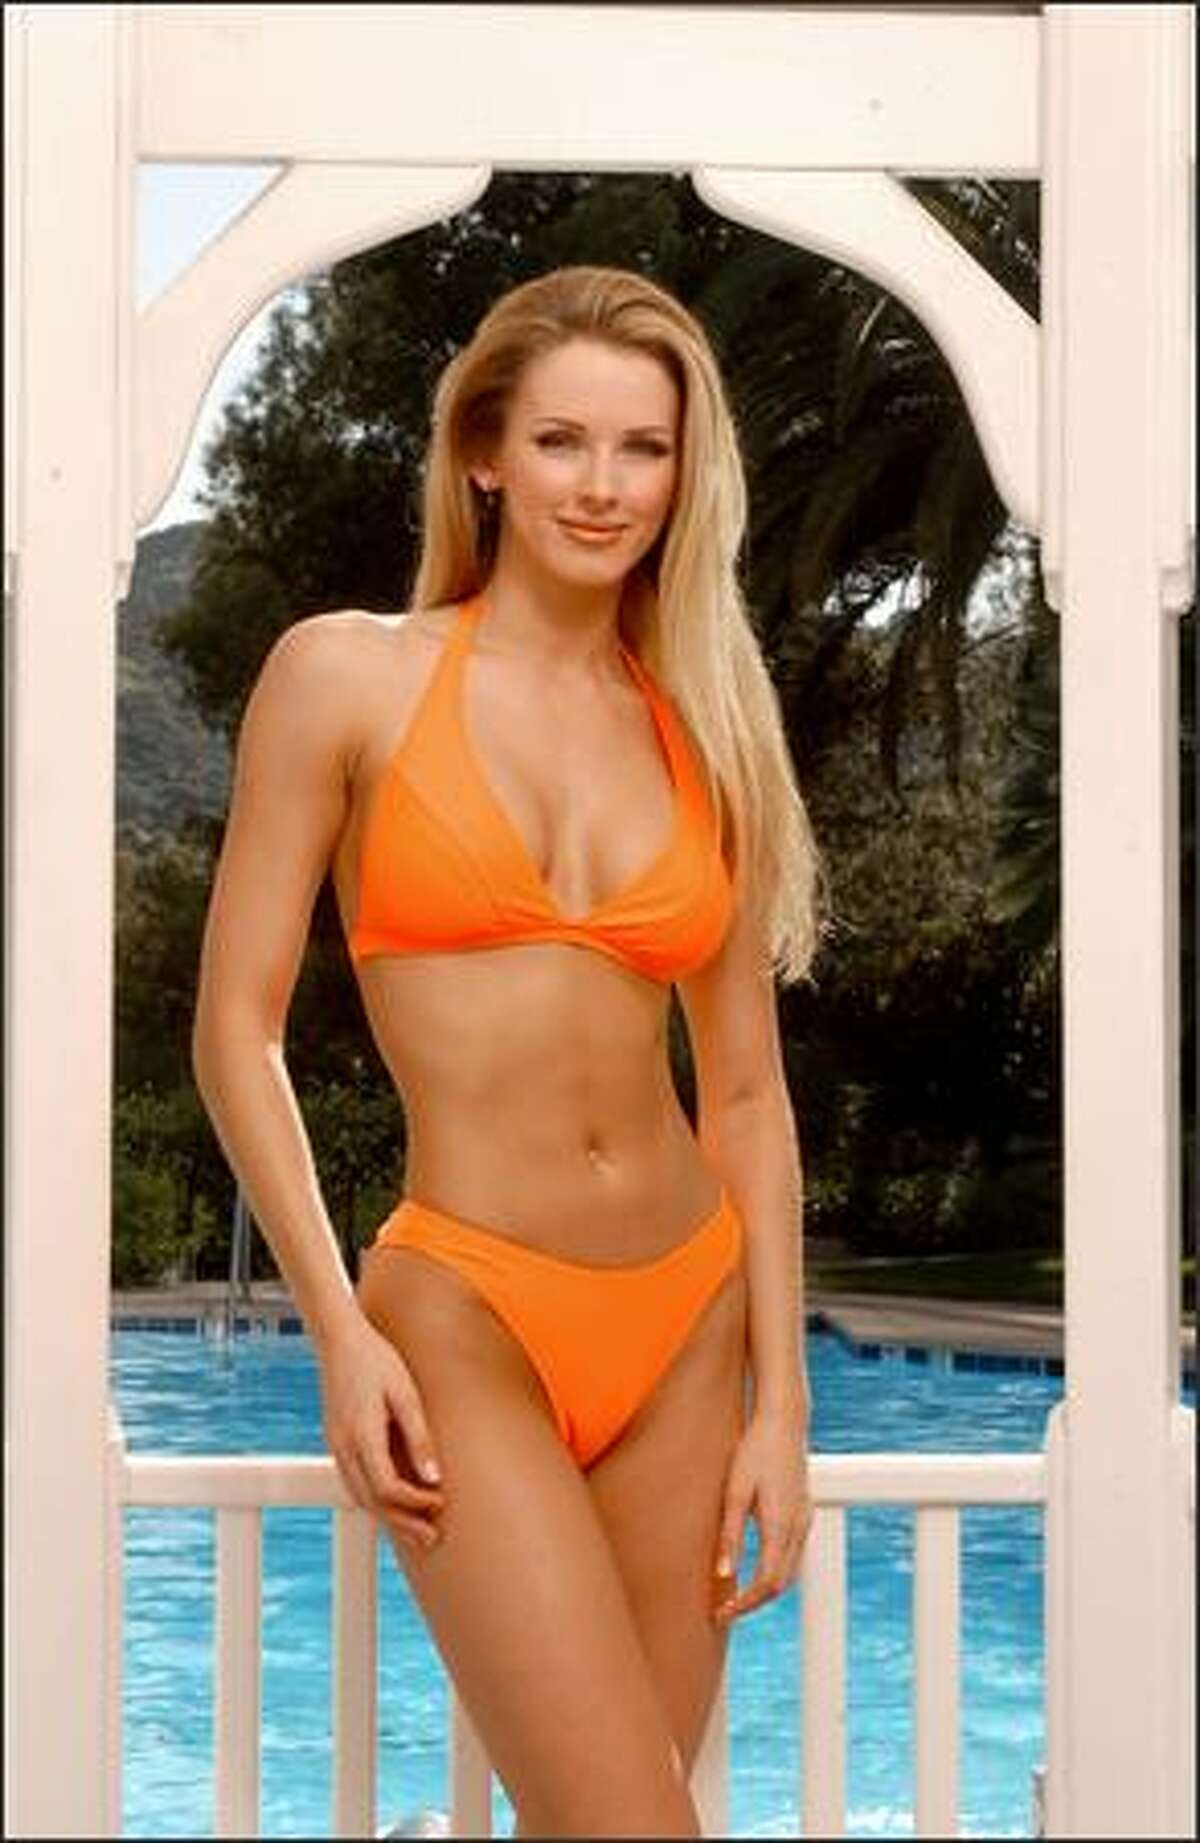 Shandi Finnessey, Miss Missouri USA 2004, poses in her Endless Sun swimsuit during registration and fittings for the Miss USA 2004 competition at the Universal Hilton Hotel in Los Angeles on March 30.